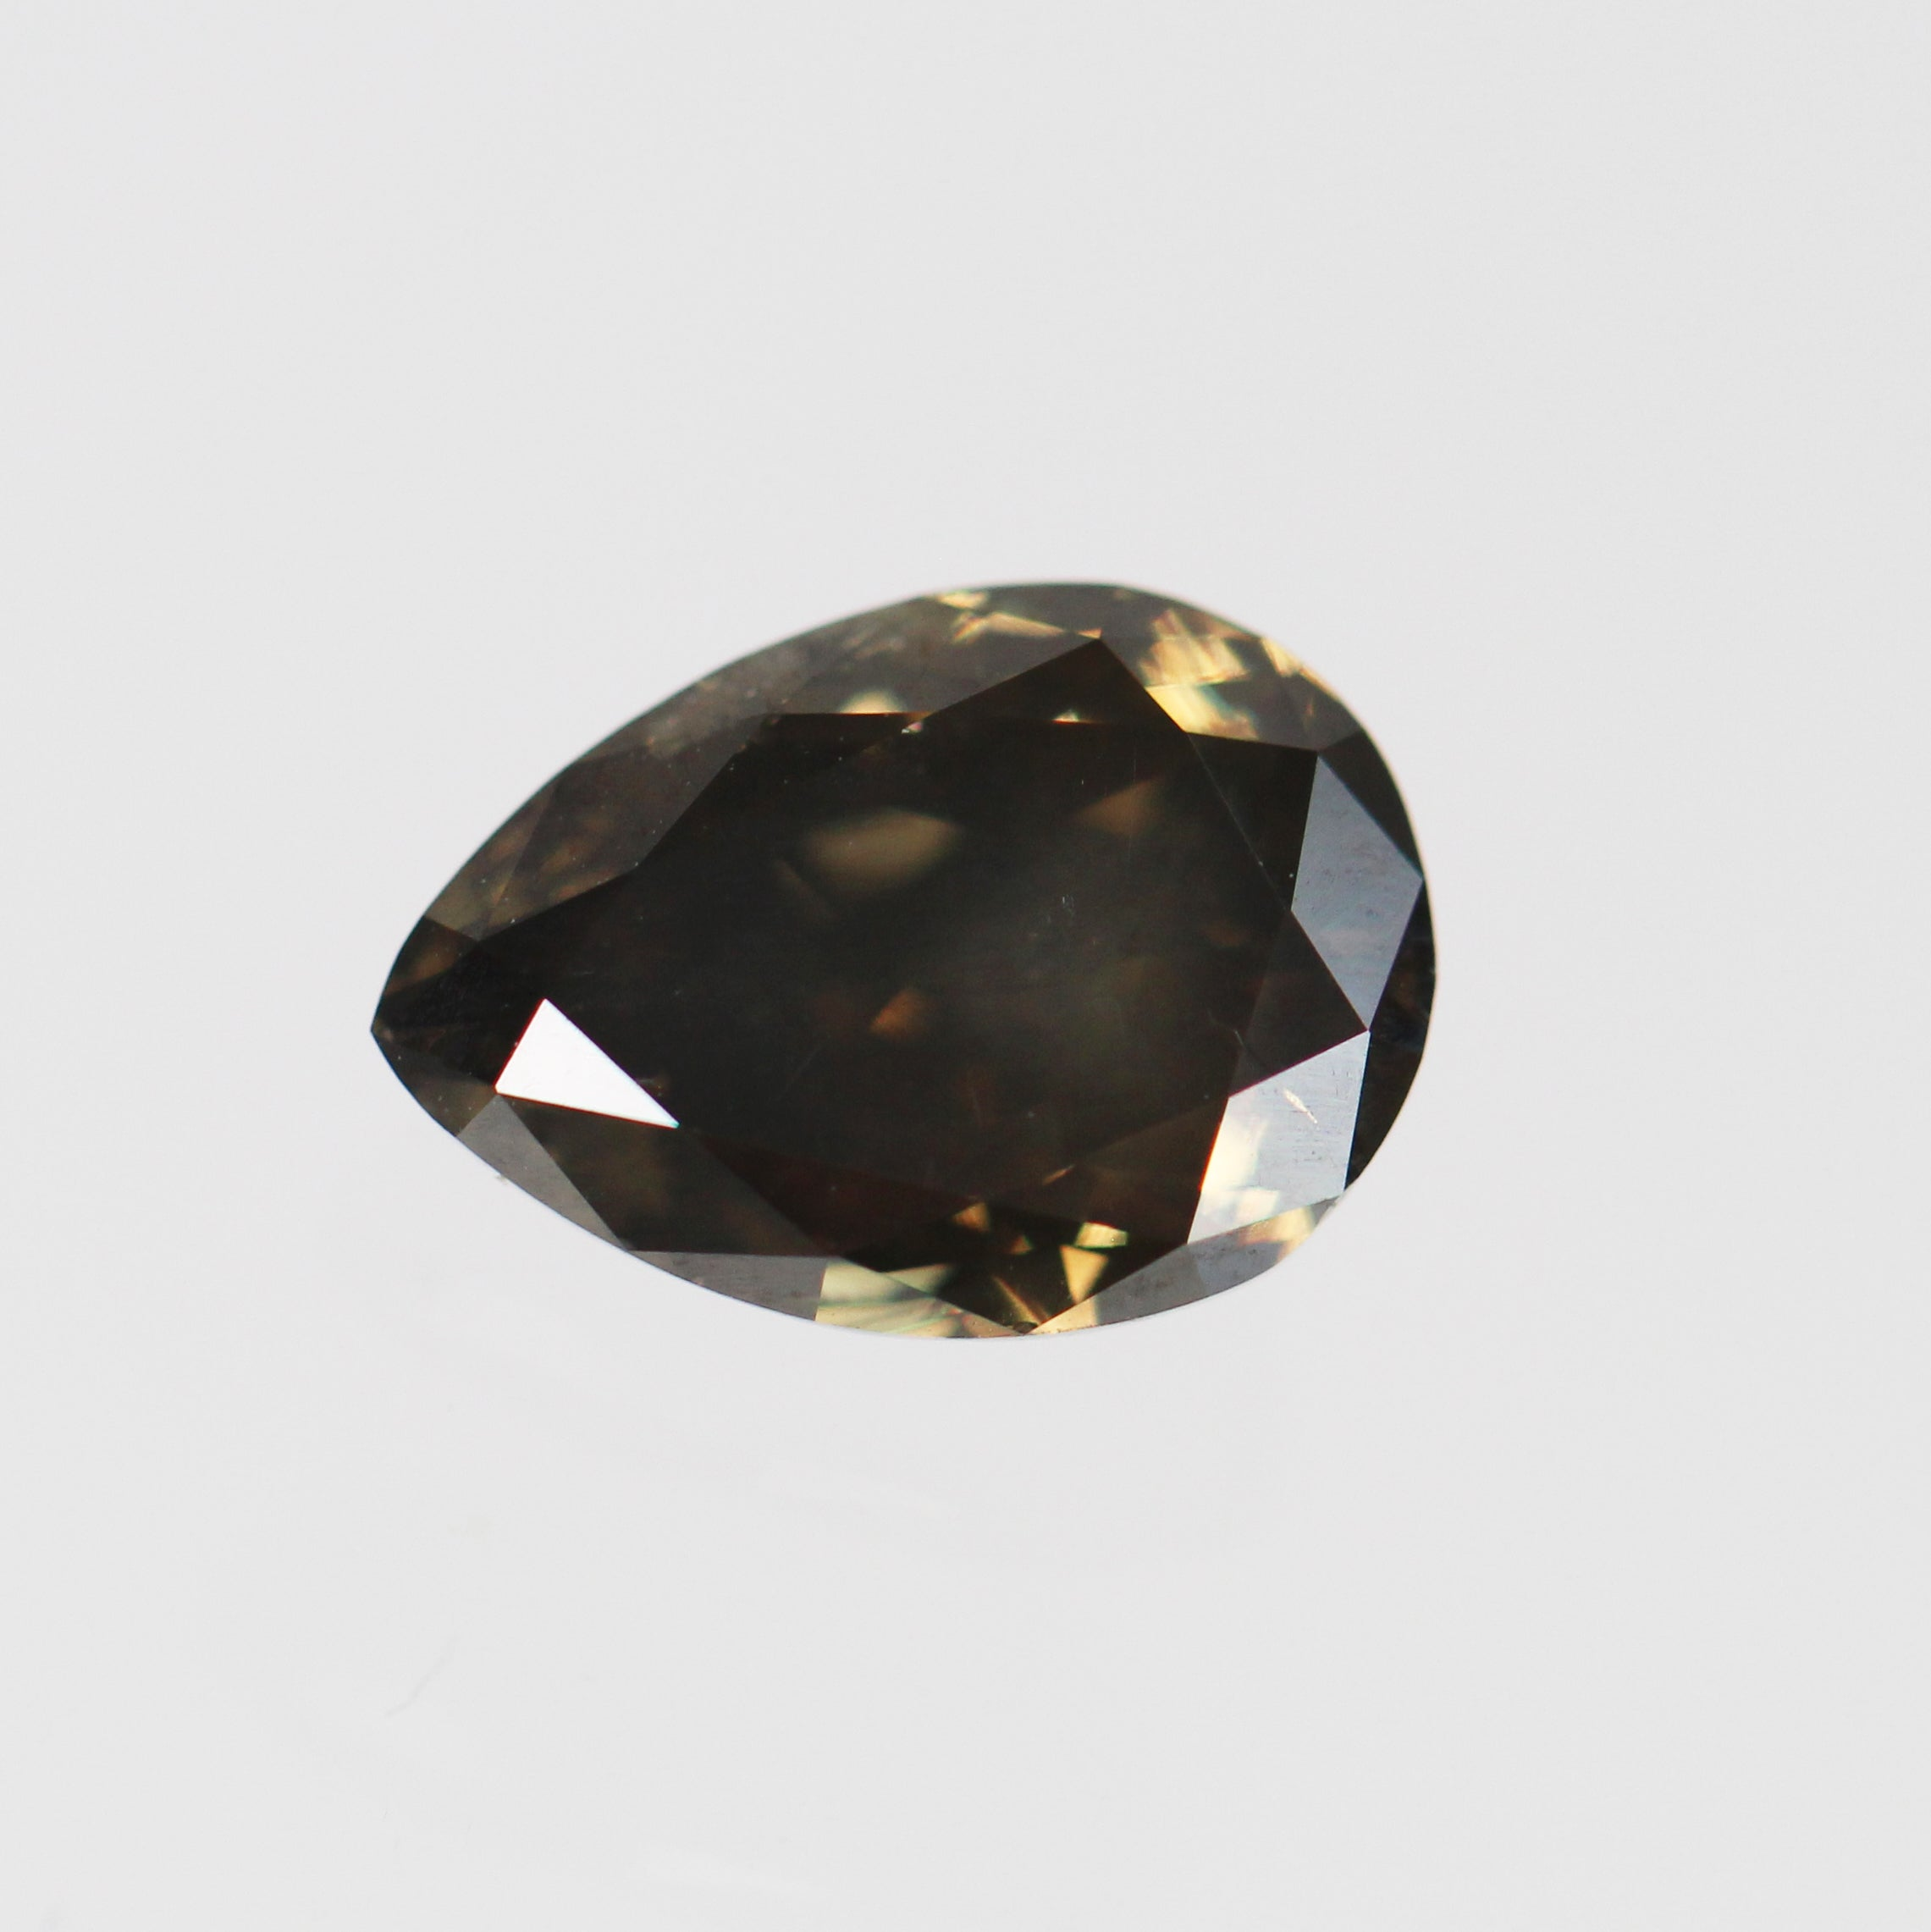 1.84 Carat Pear Celestial Diamond for Custom Work - Inventory Code PBB184 - Celestial Diamonds ® by Midwinter Co.